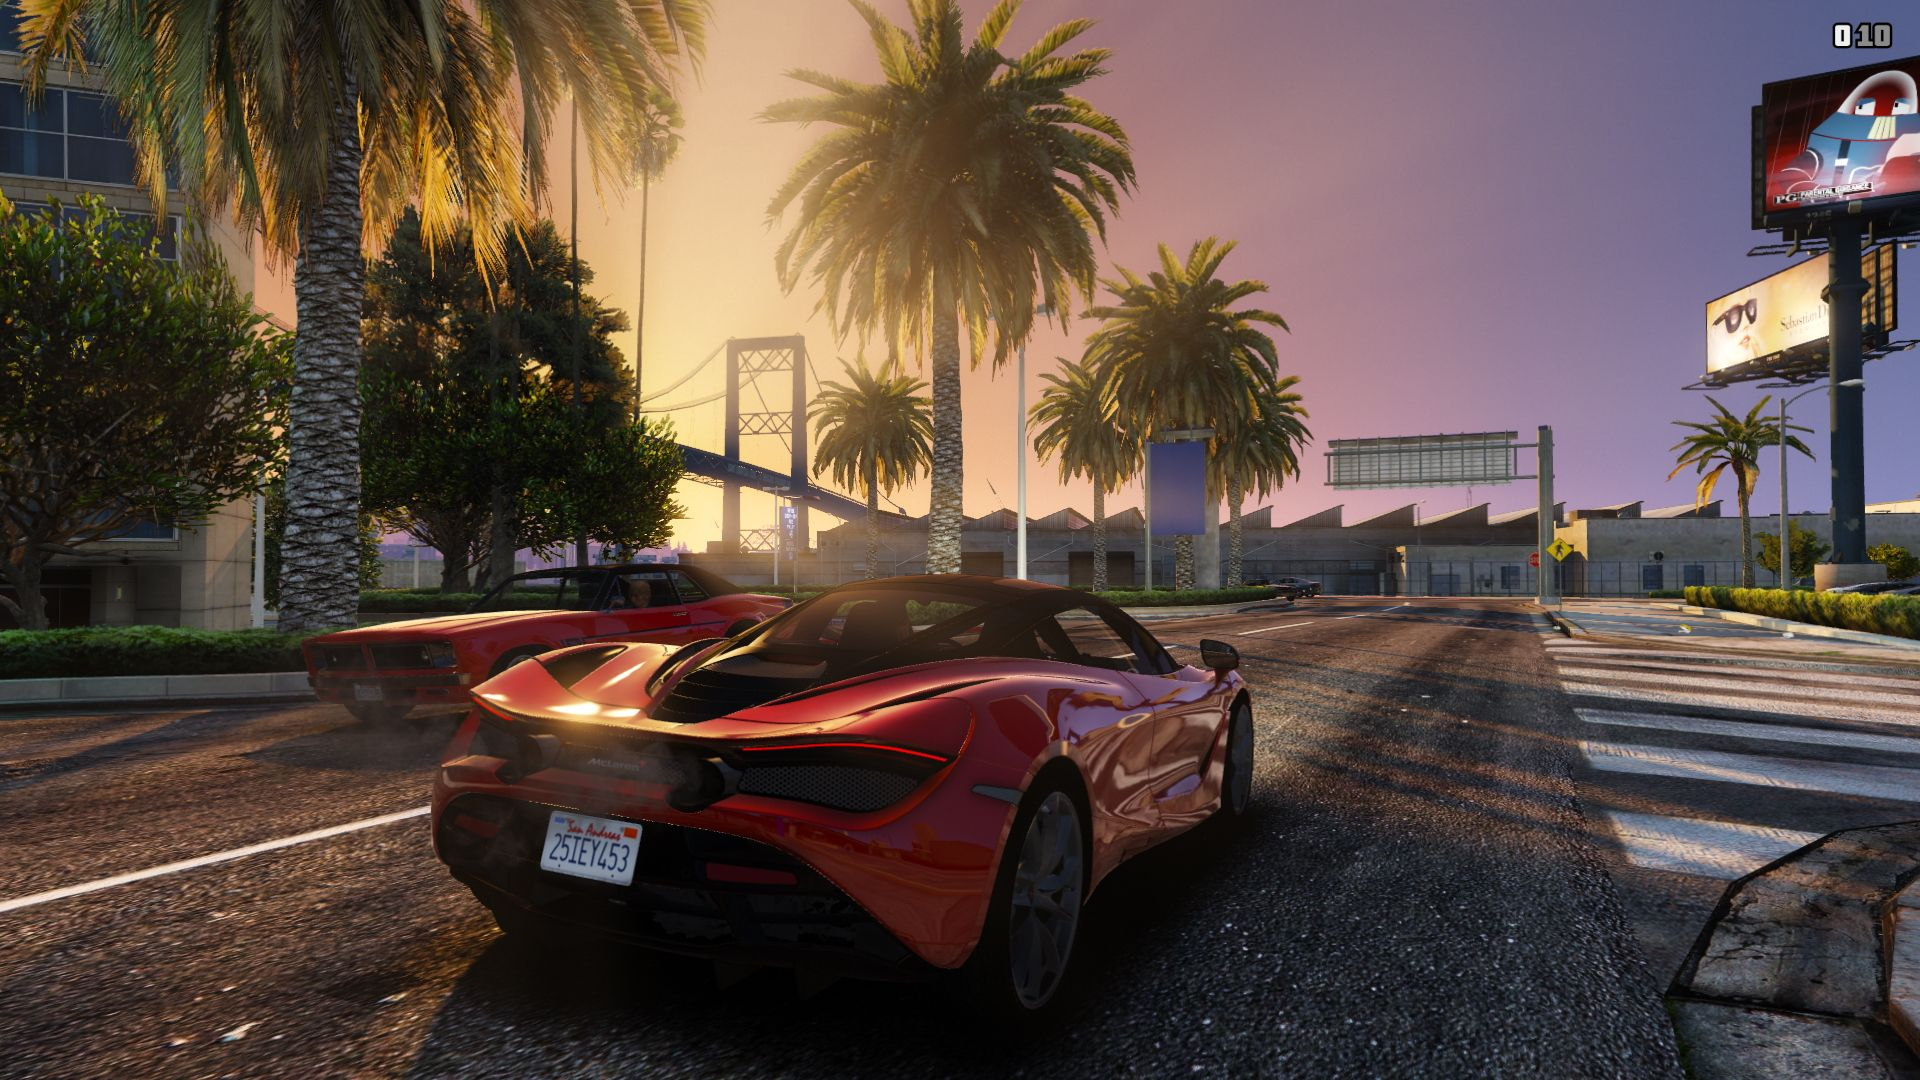 GTA V Beautification Project - Version 2 75 ready for